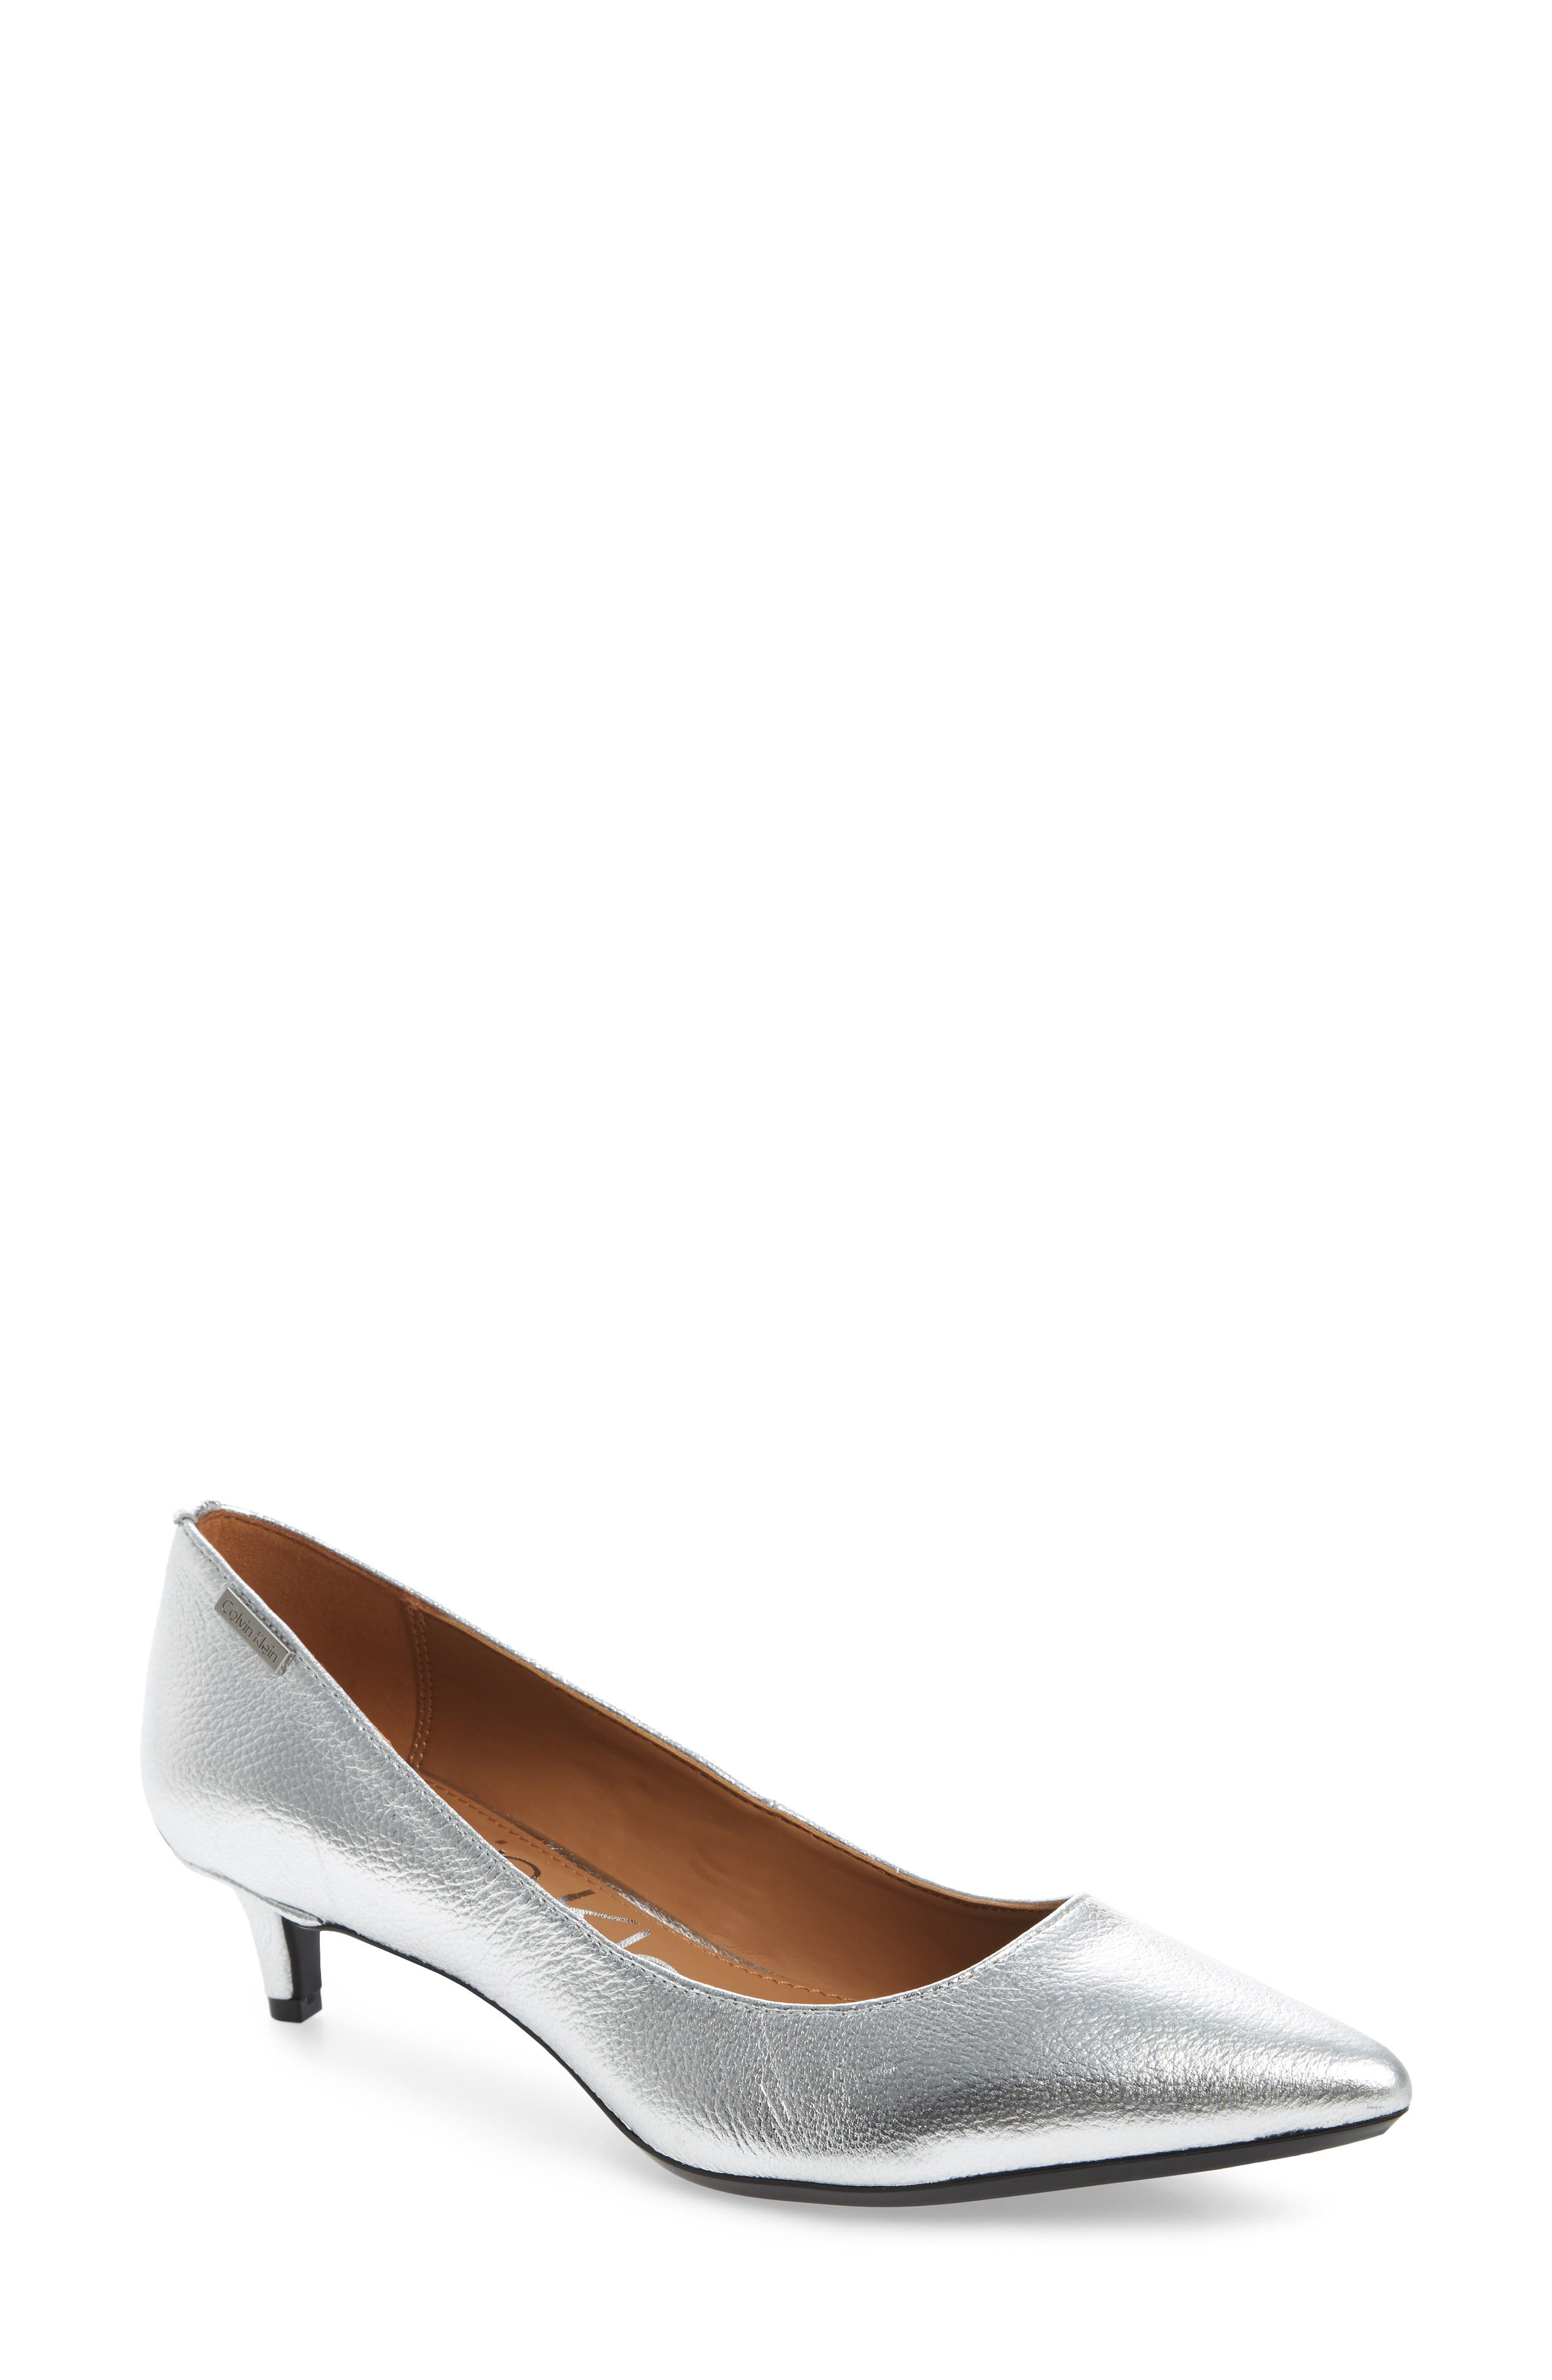 Gabrianna Pump,                         Main,                         color, Silver Leather